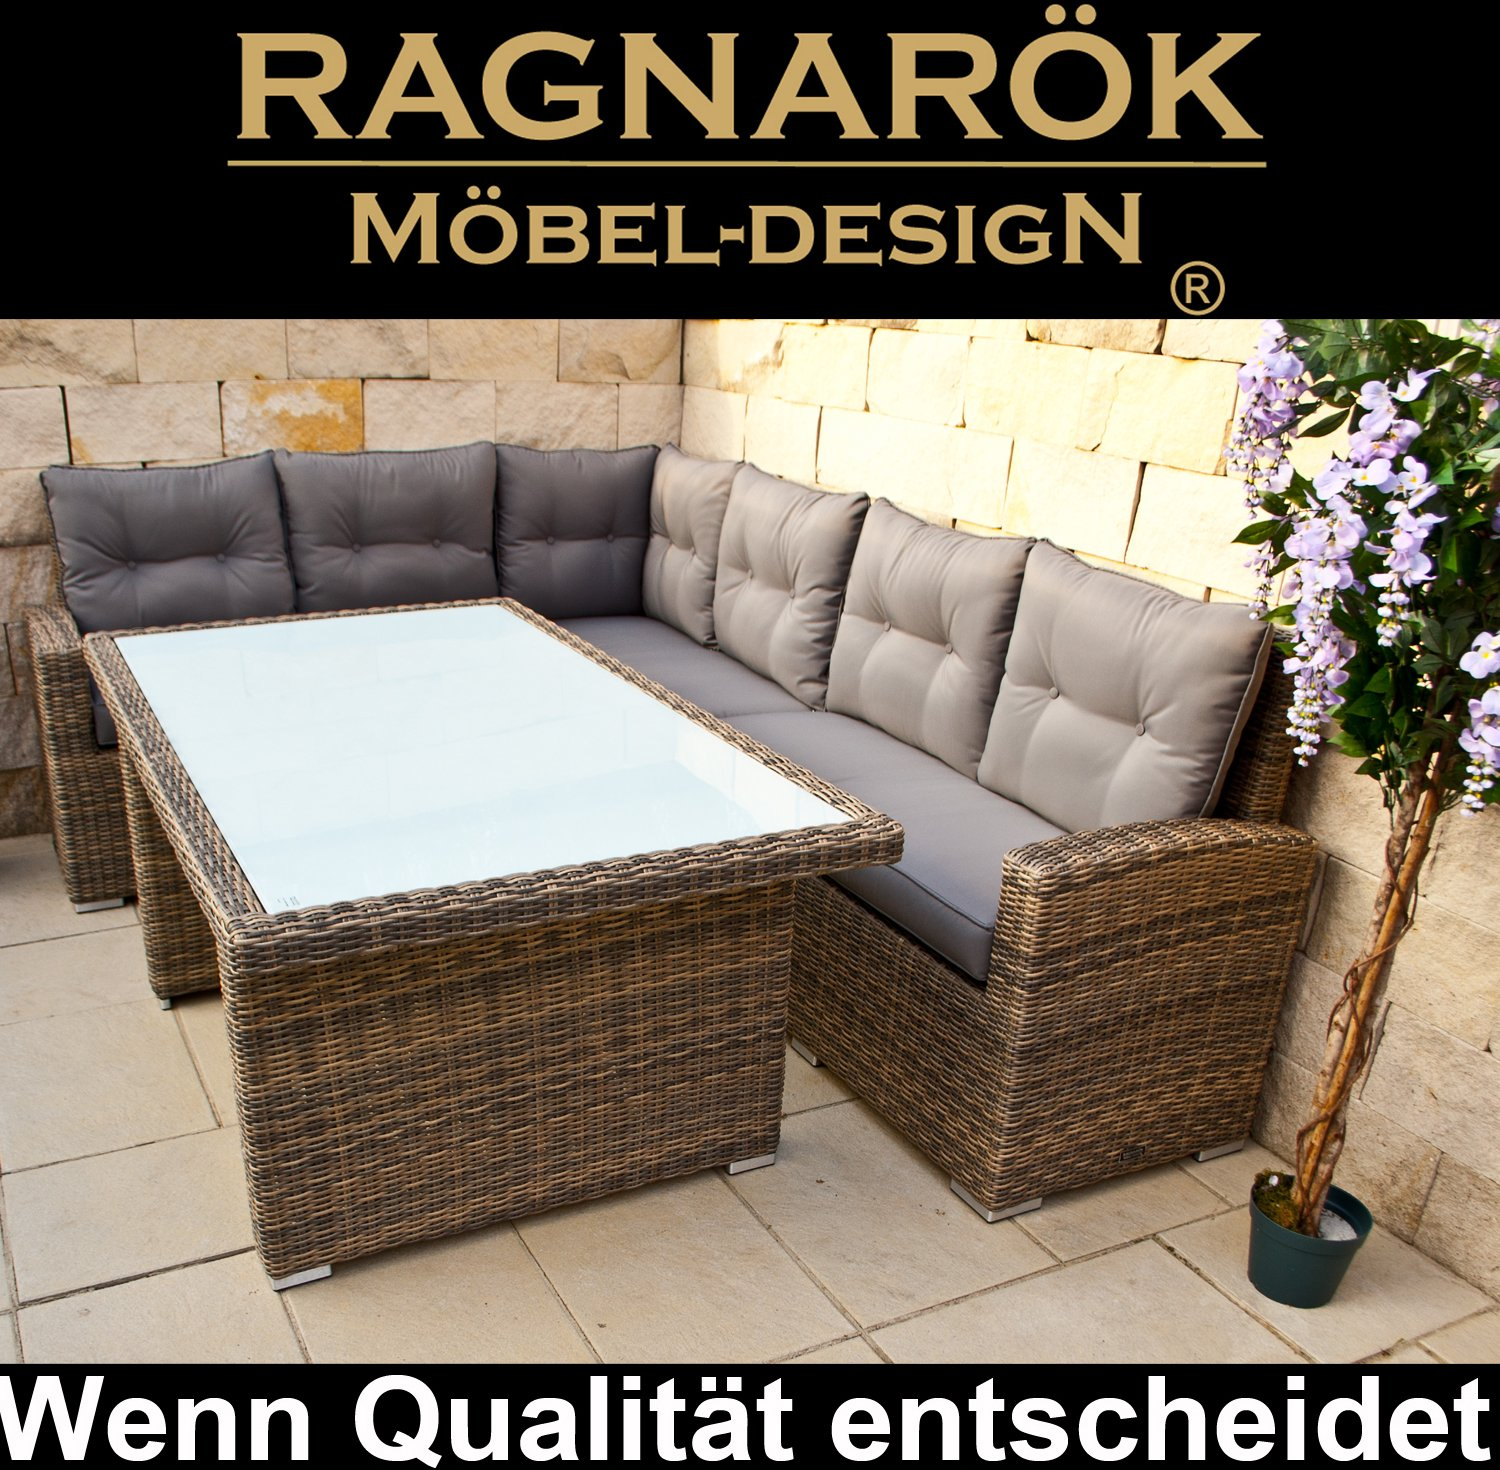 gartenmbel sitzecke elegant details with gartenmbel. Black Bedroom Furniture Sets. Home Design Ideas